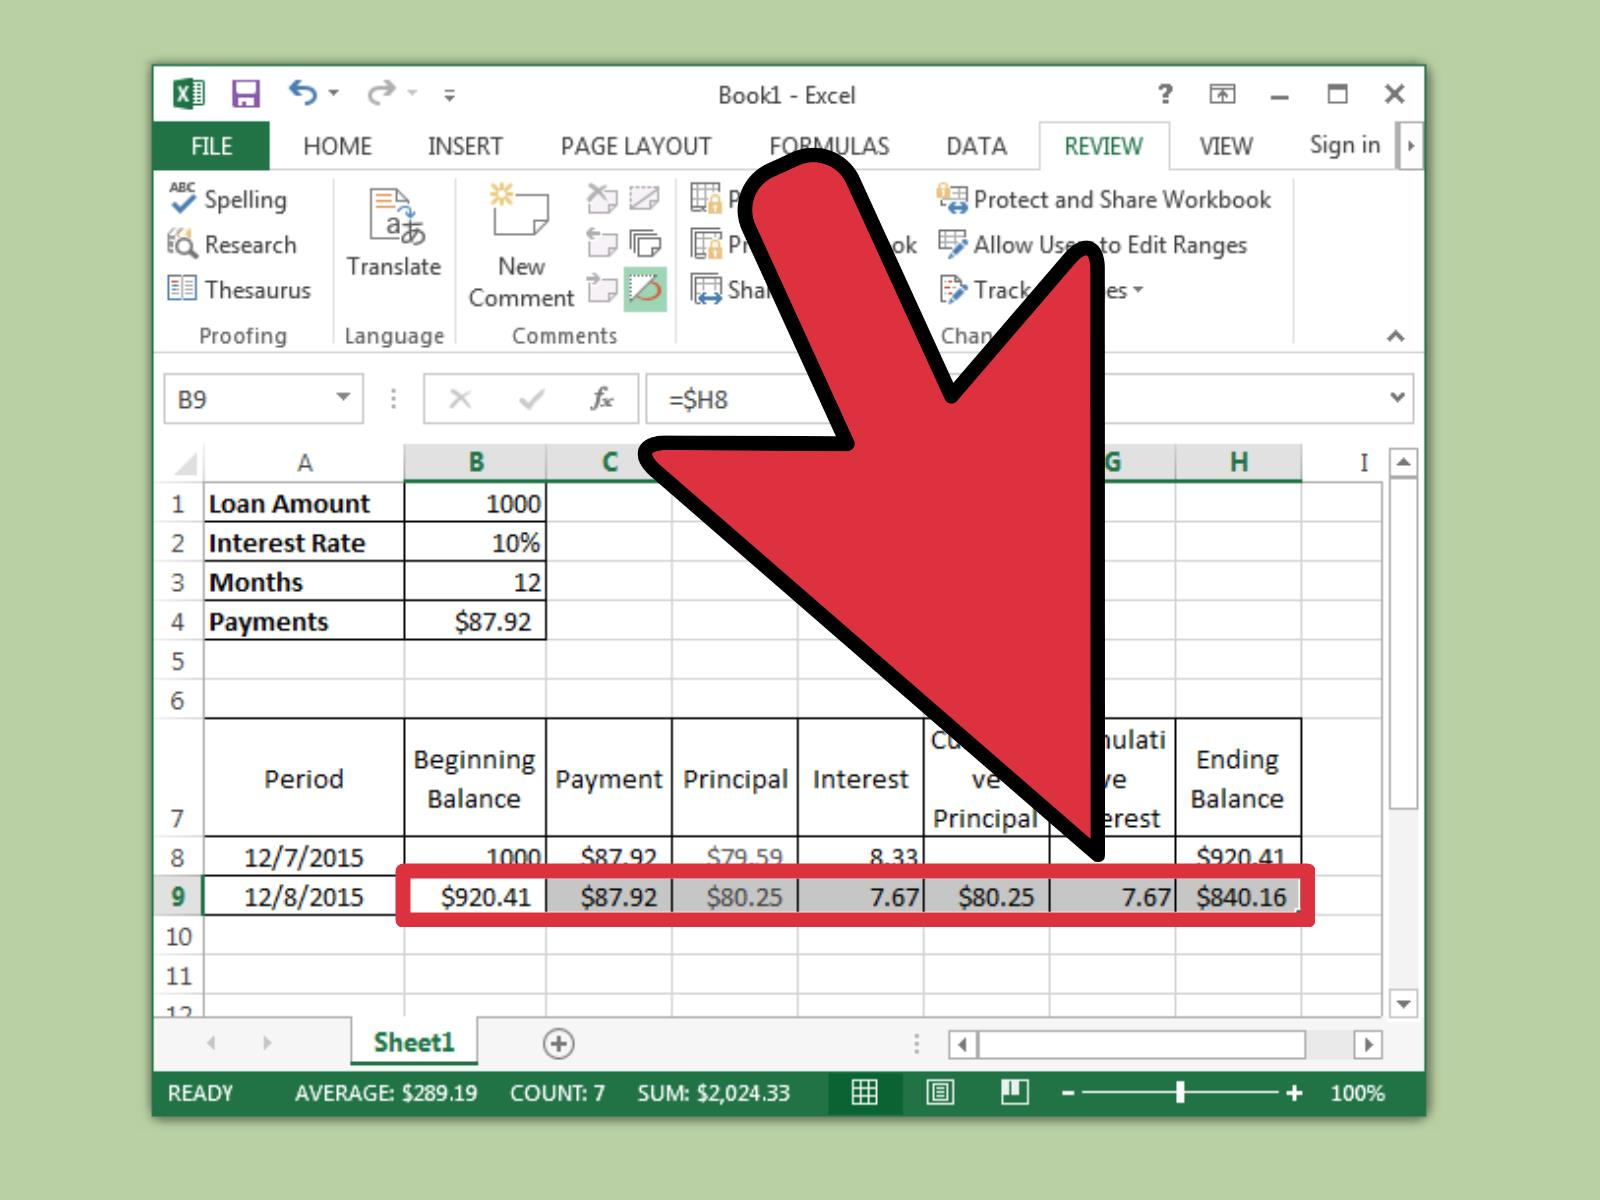 Excel Spreadsheet For Loan Payments Throughout How To Prepare Amortization Schedule In Excel: 10 Steps